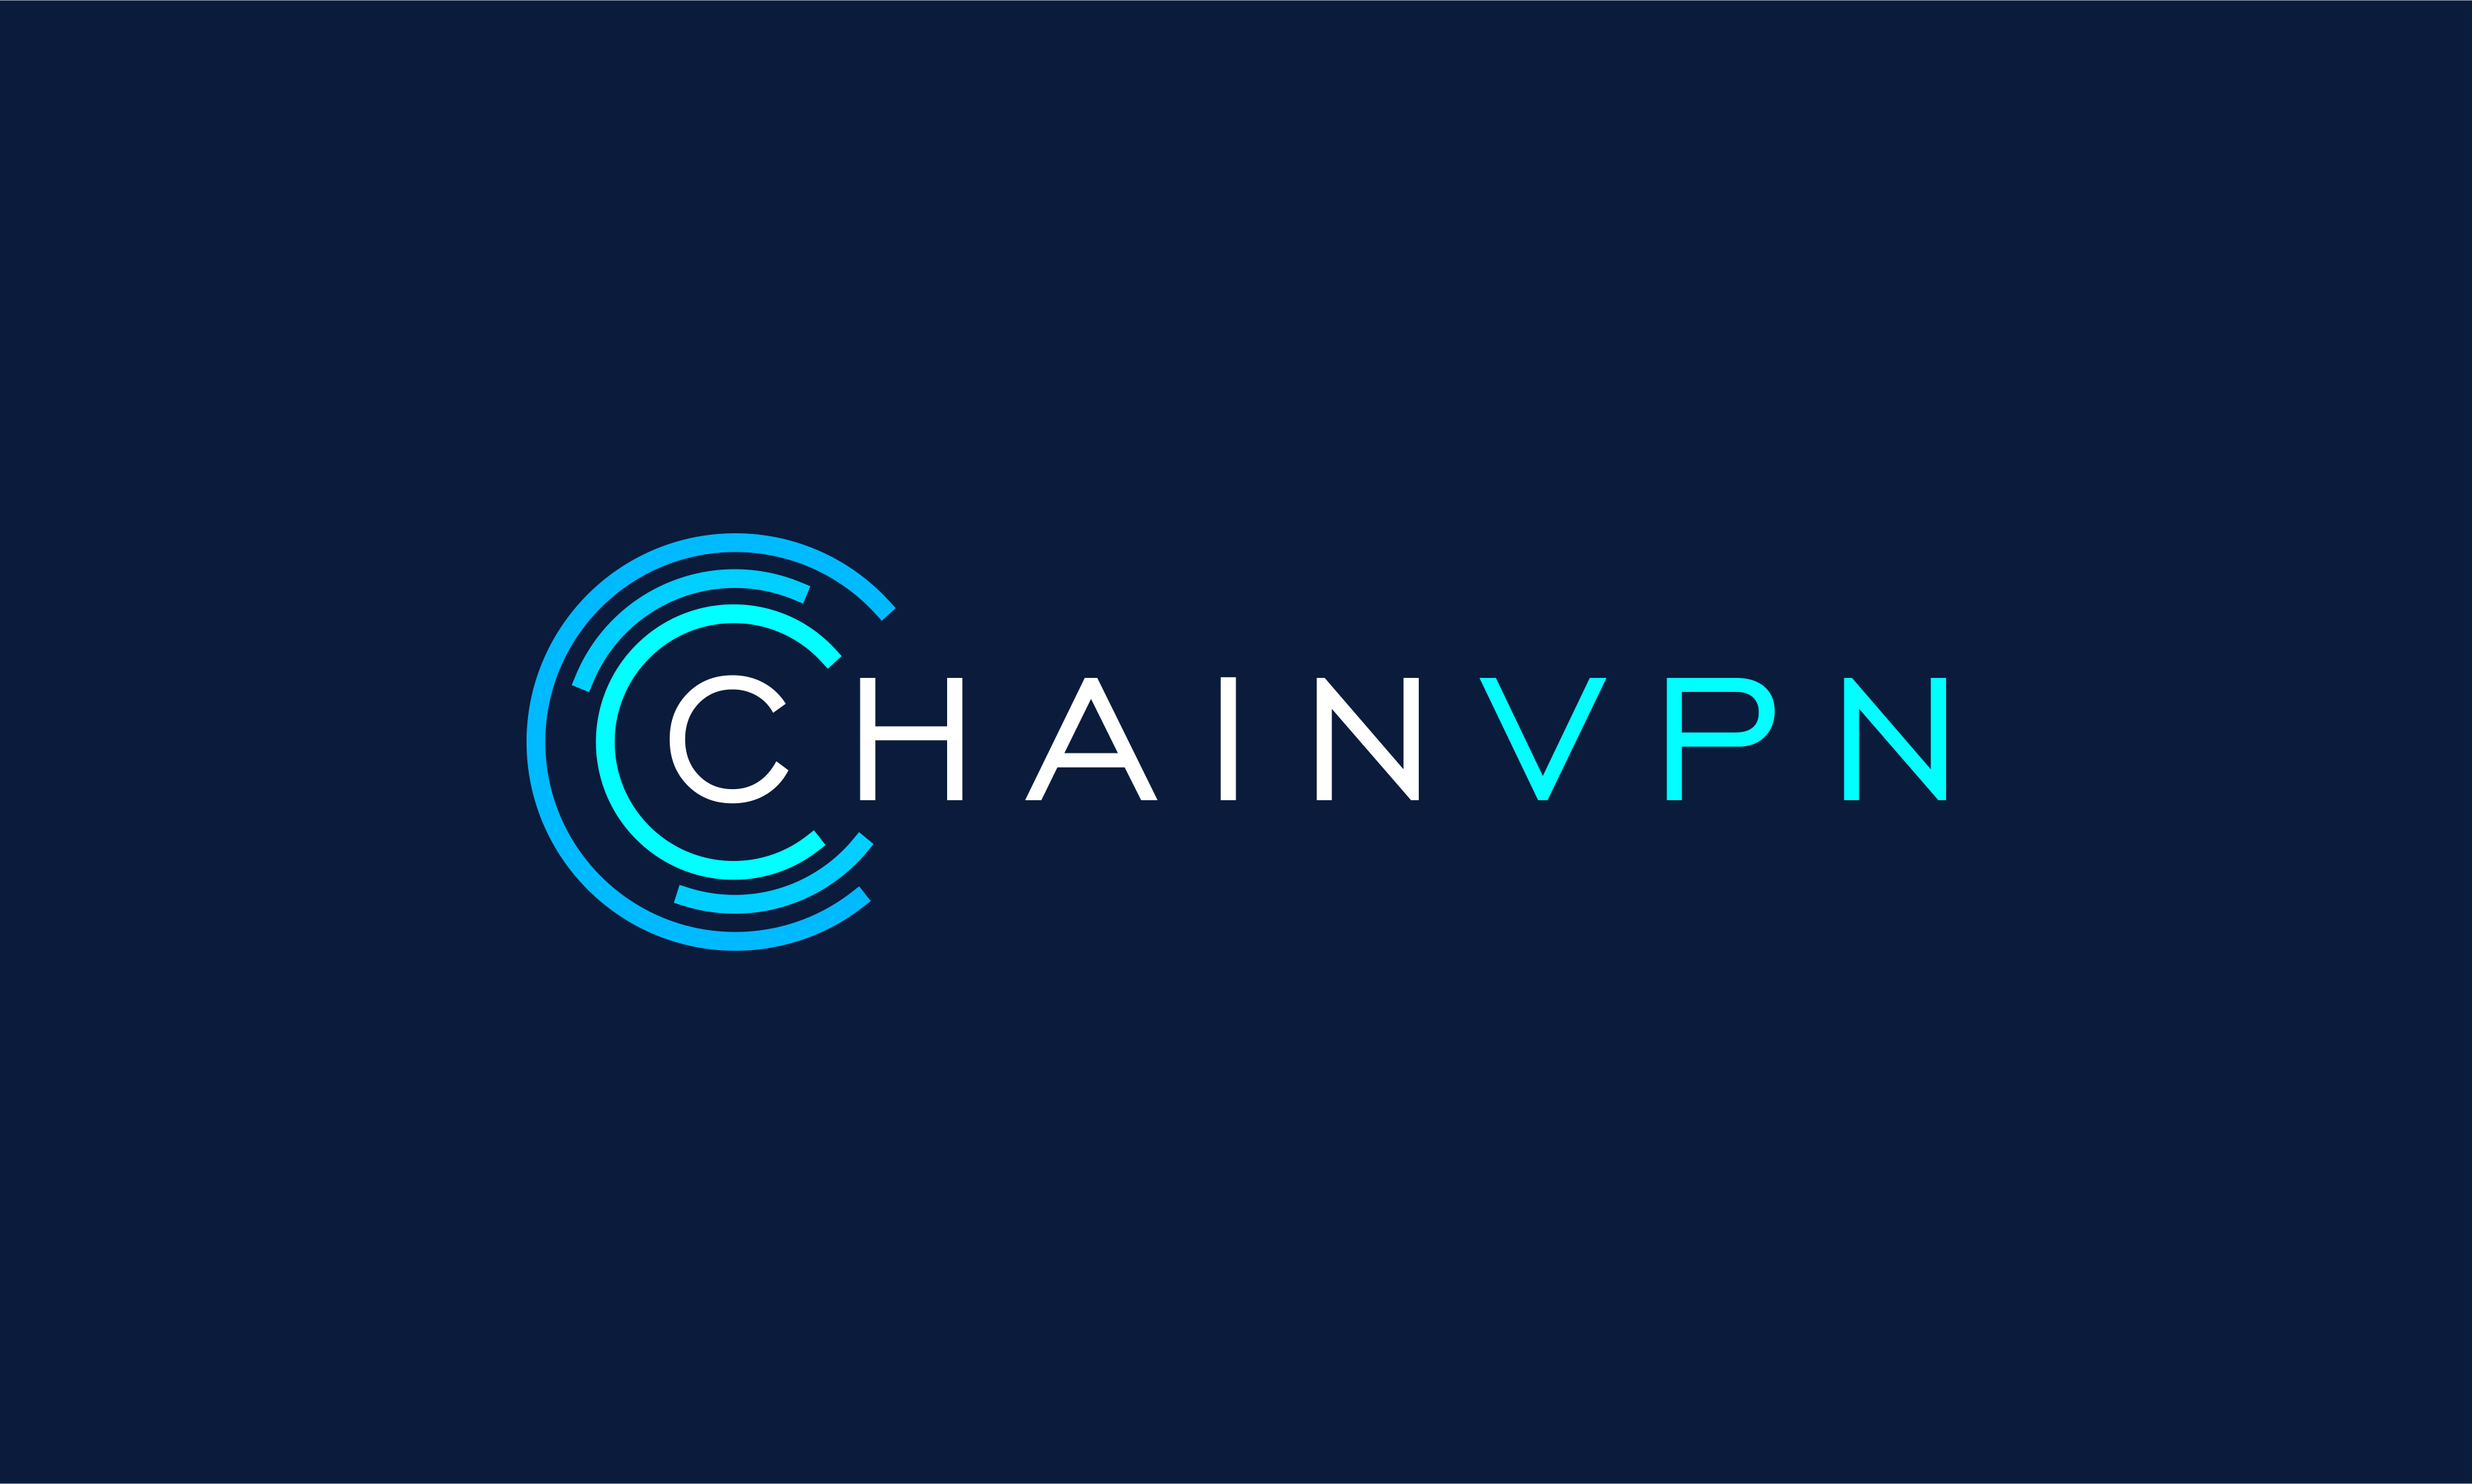 Chainvpn - Cryptocurrency brand name for sale